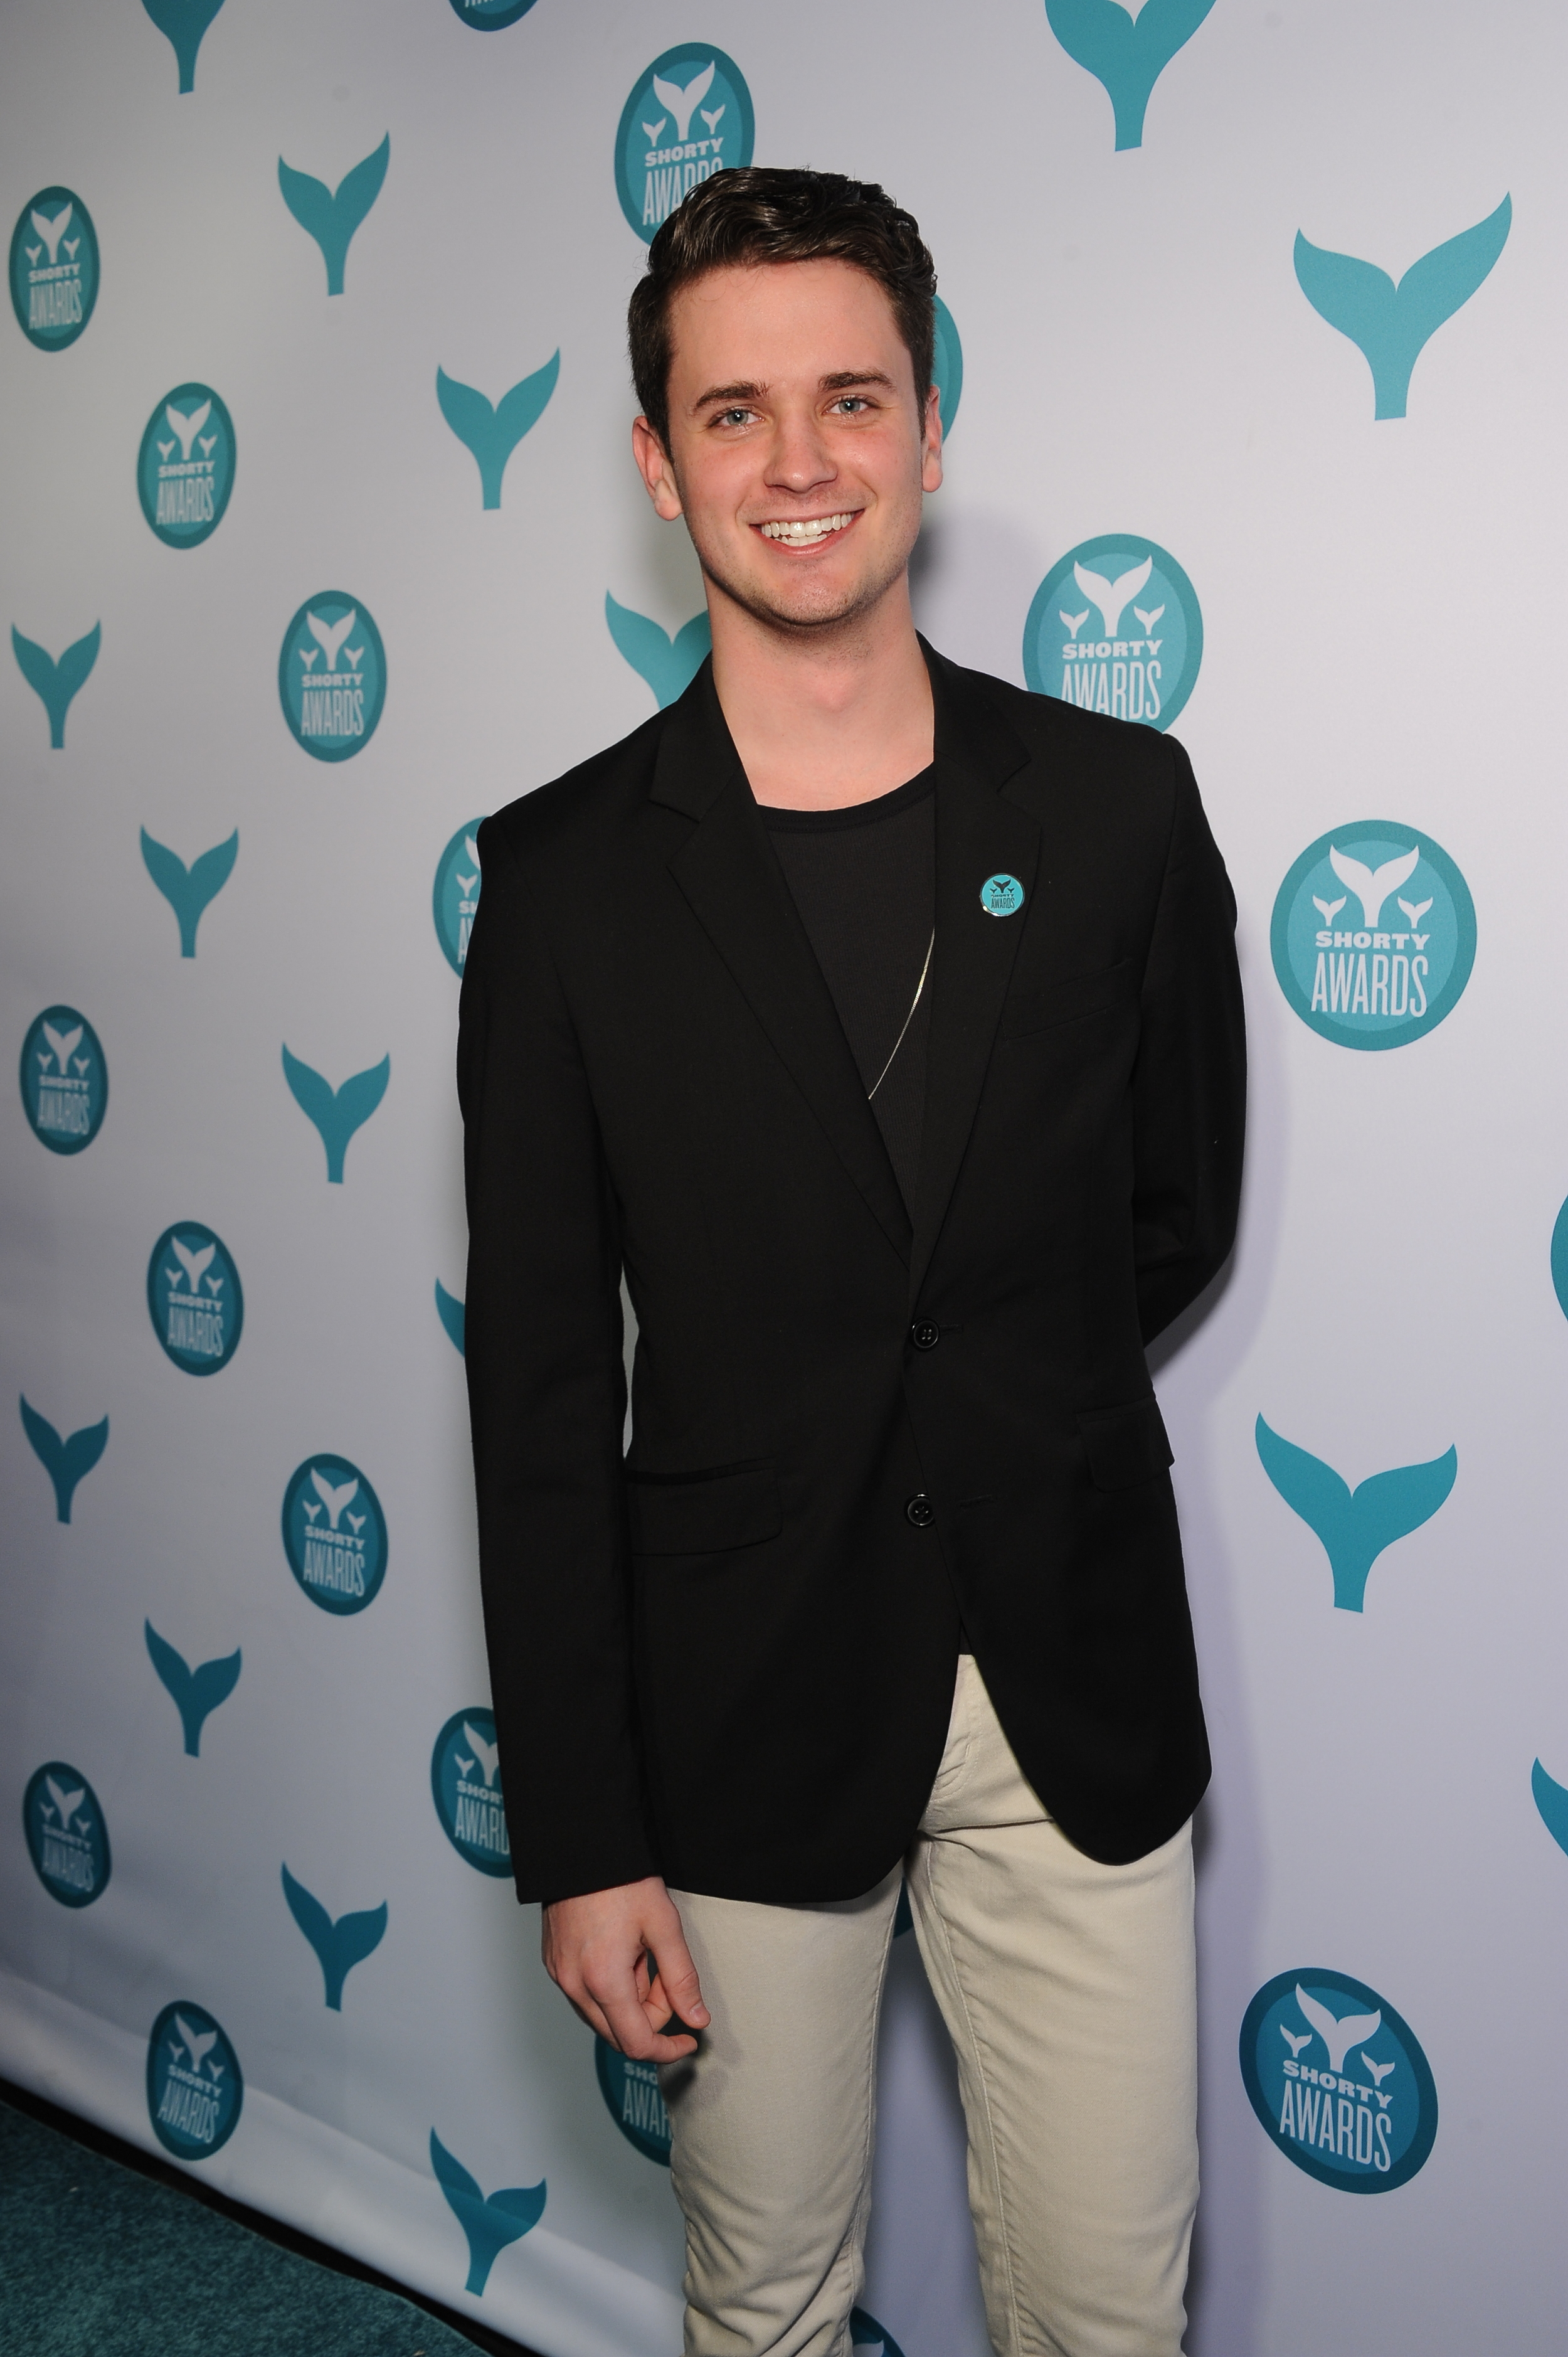 On the blue carpet at the 2015 Shorty Awards